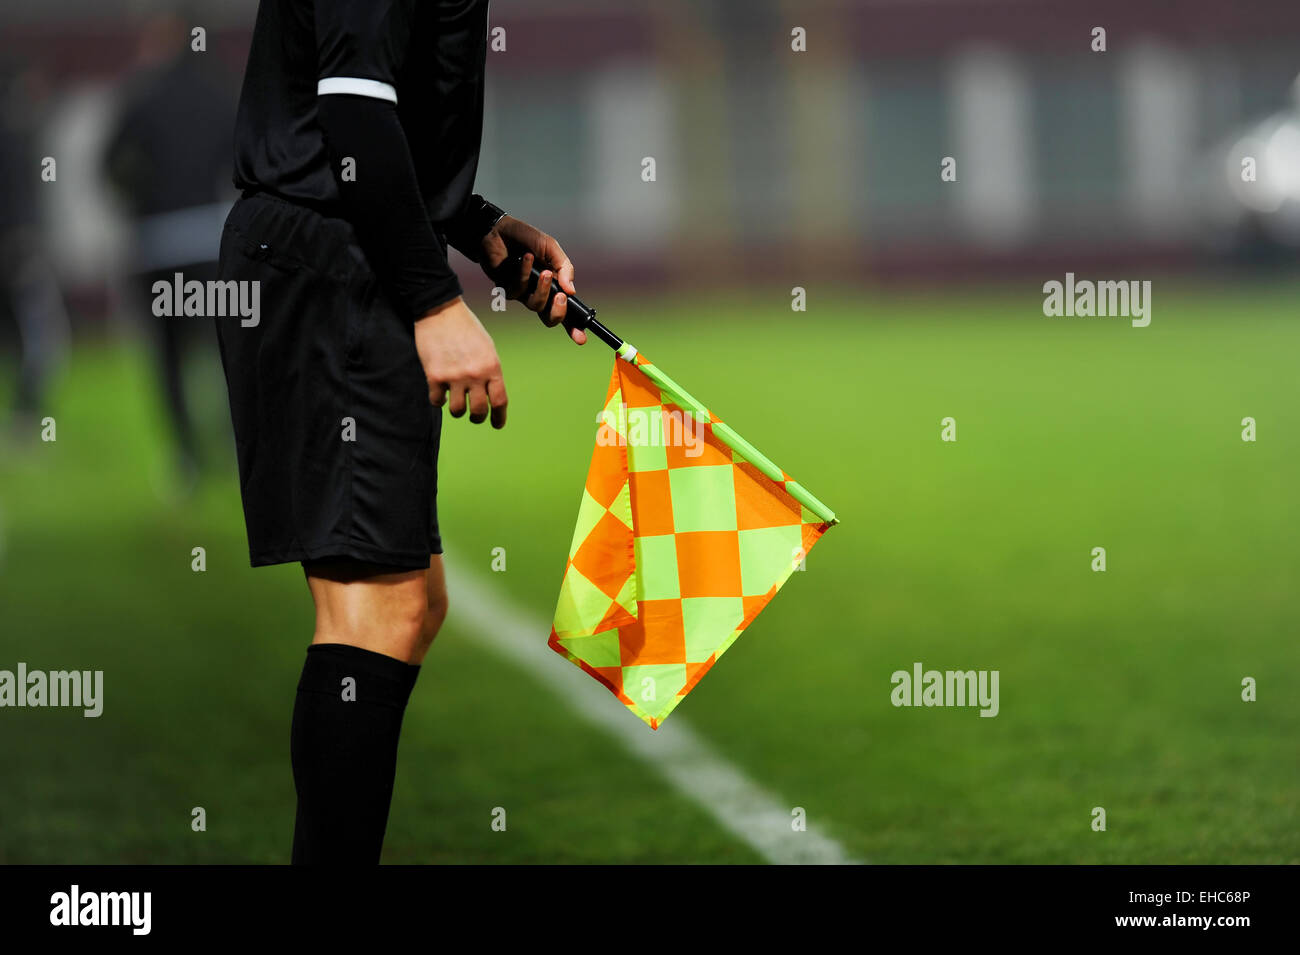 Assistant referees in action during a soccer match - Stock Image